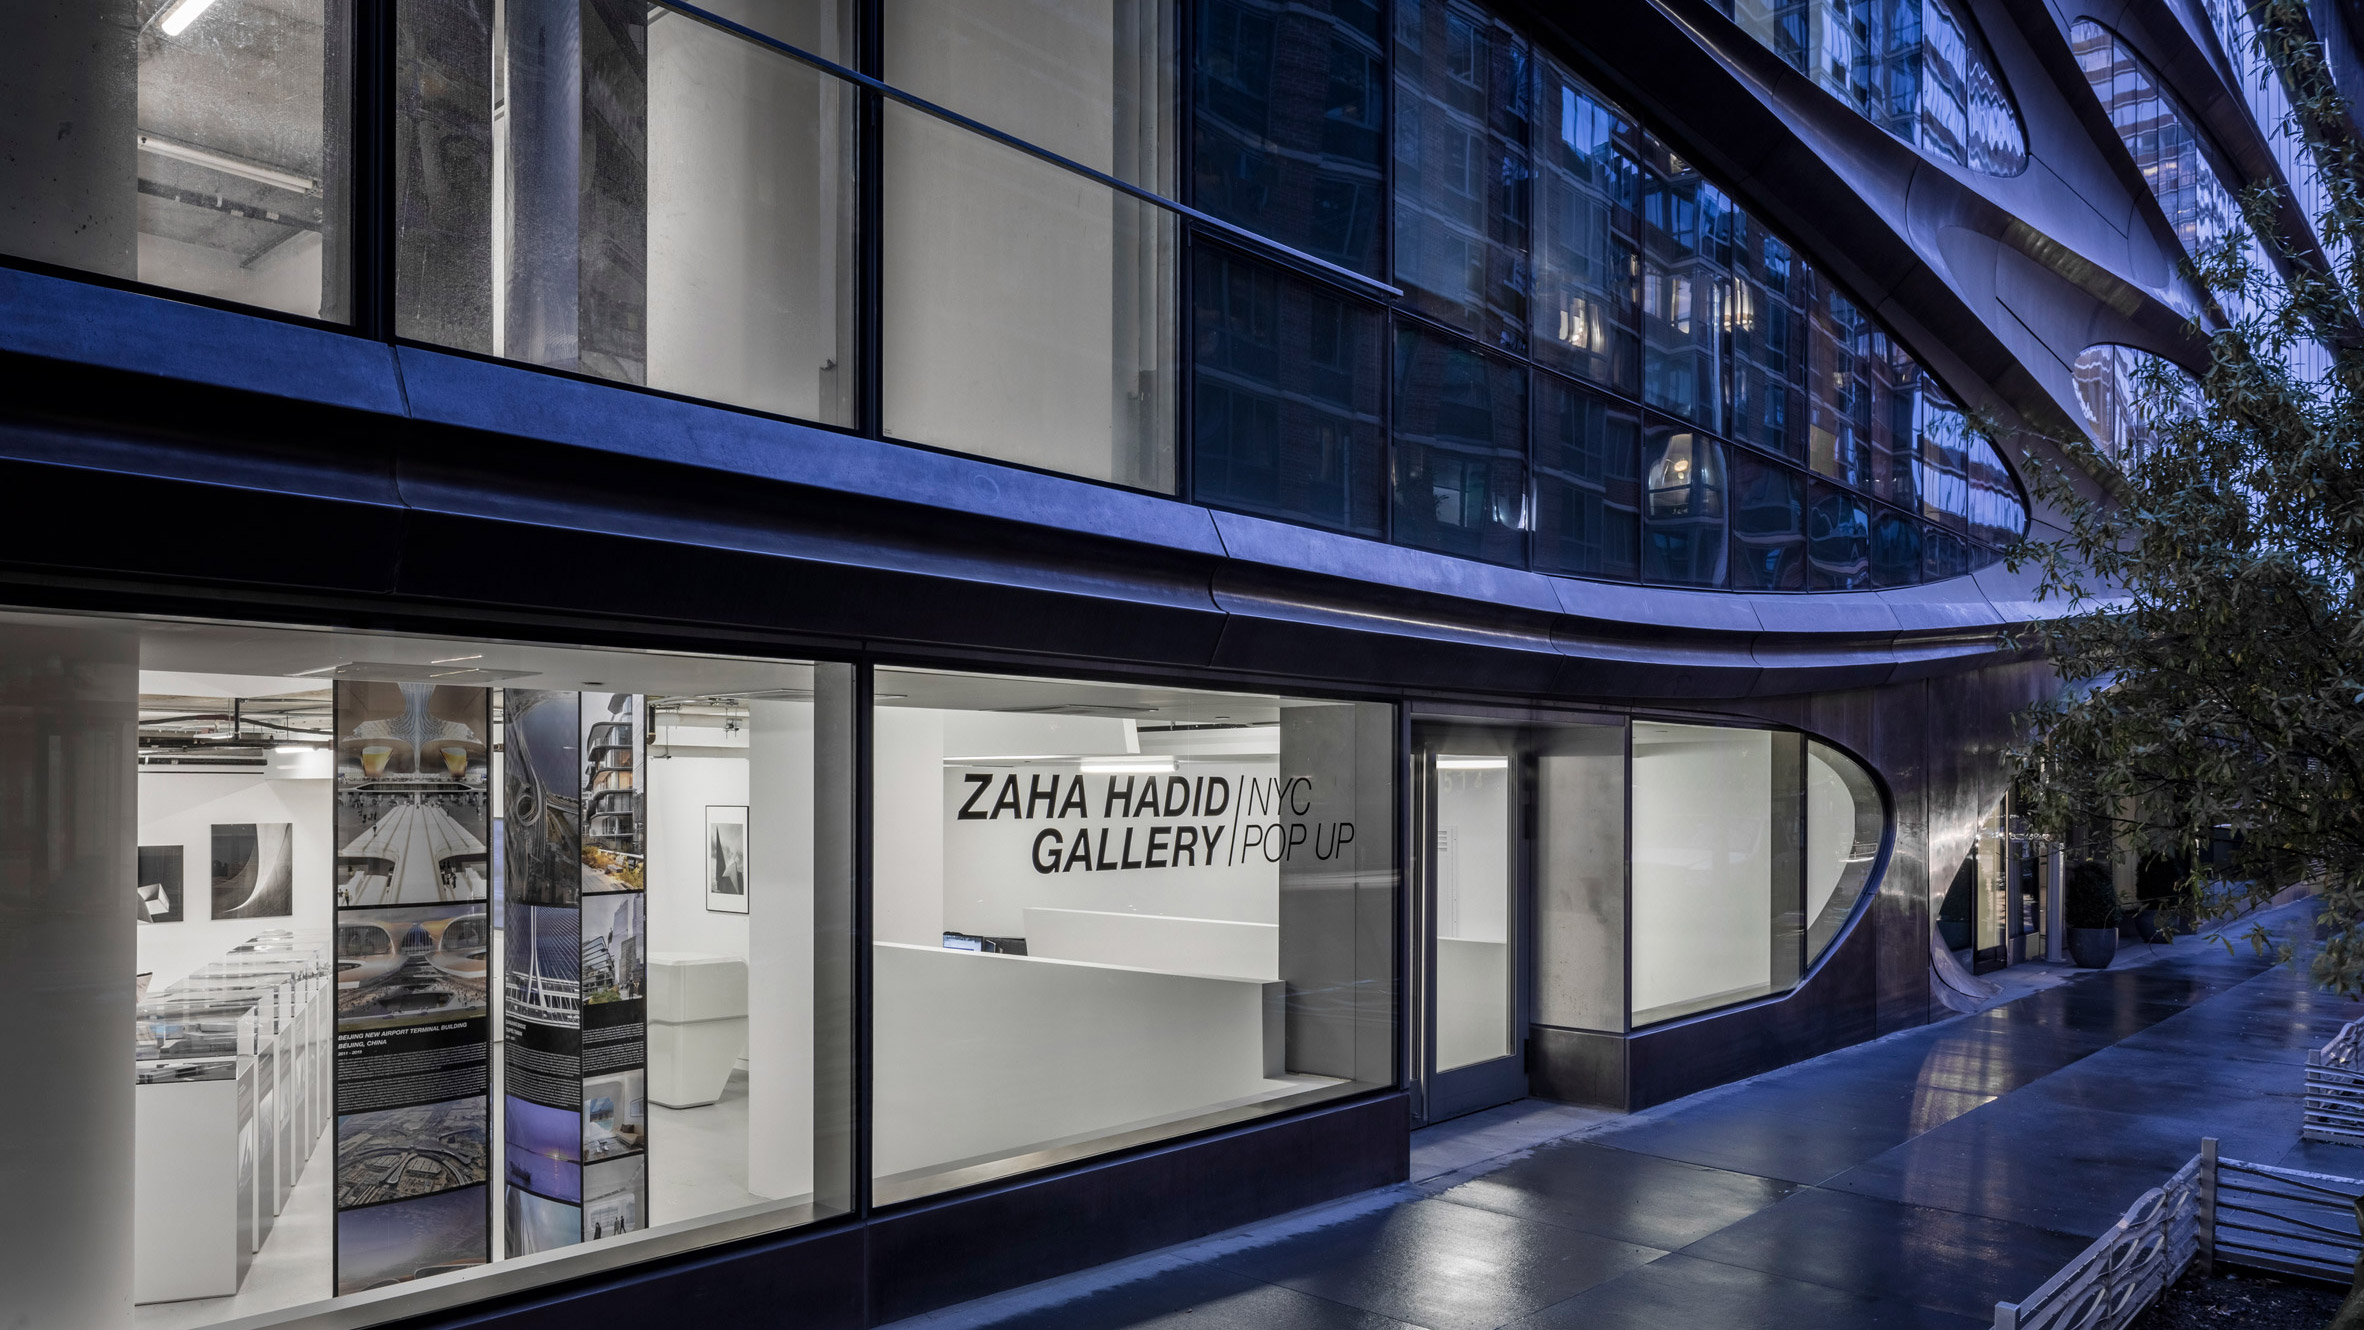 zaha-hadid-gallery-pop-up-new-york-city.jpg